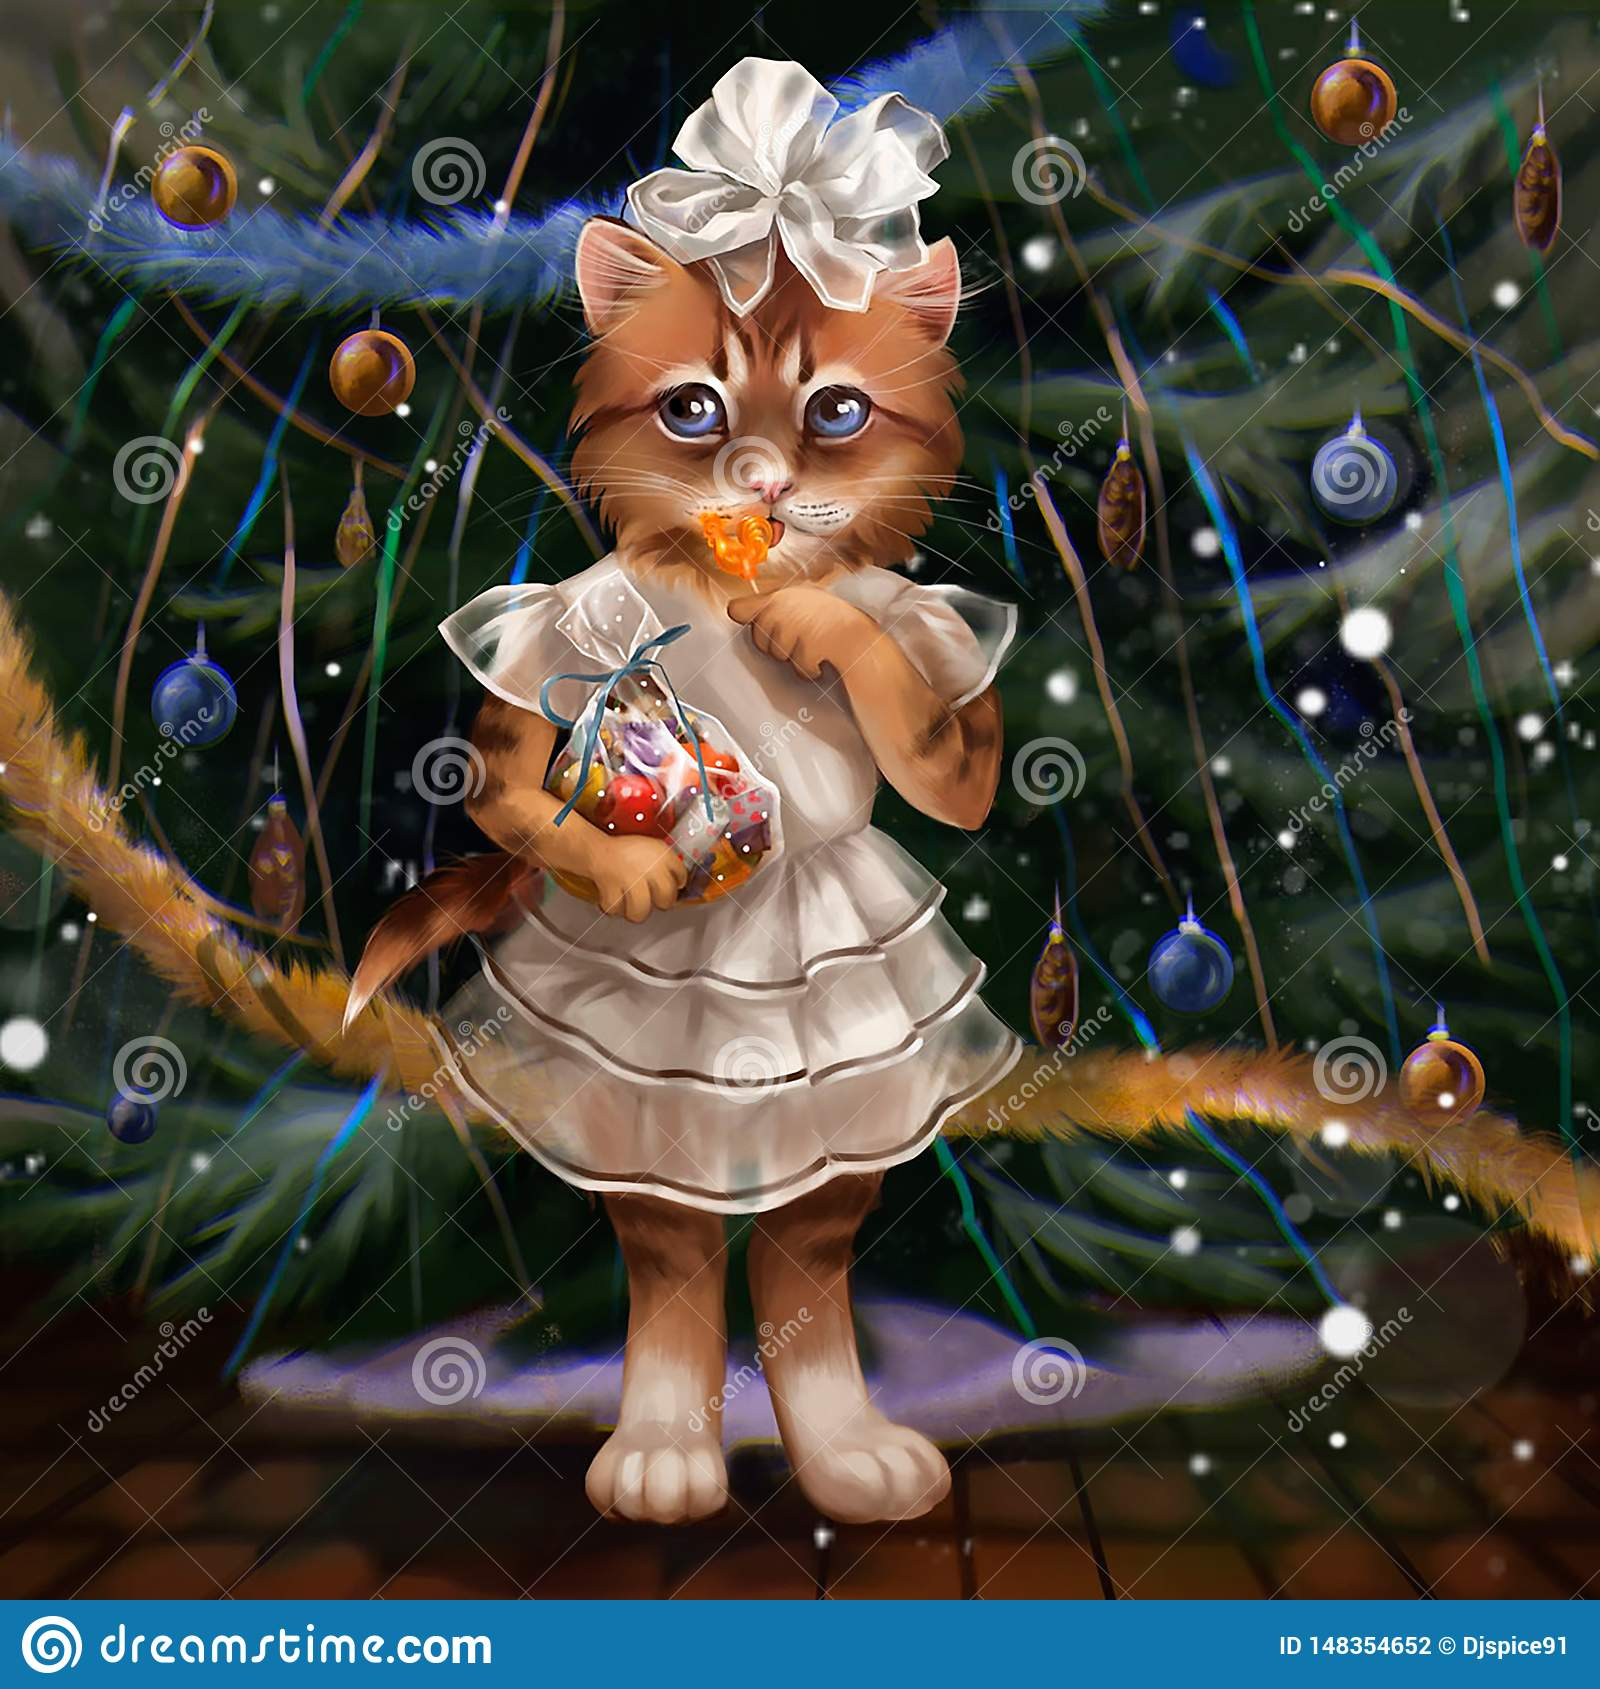 Illustration of a cat at the Christmas tree